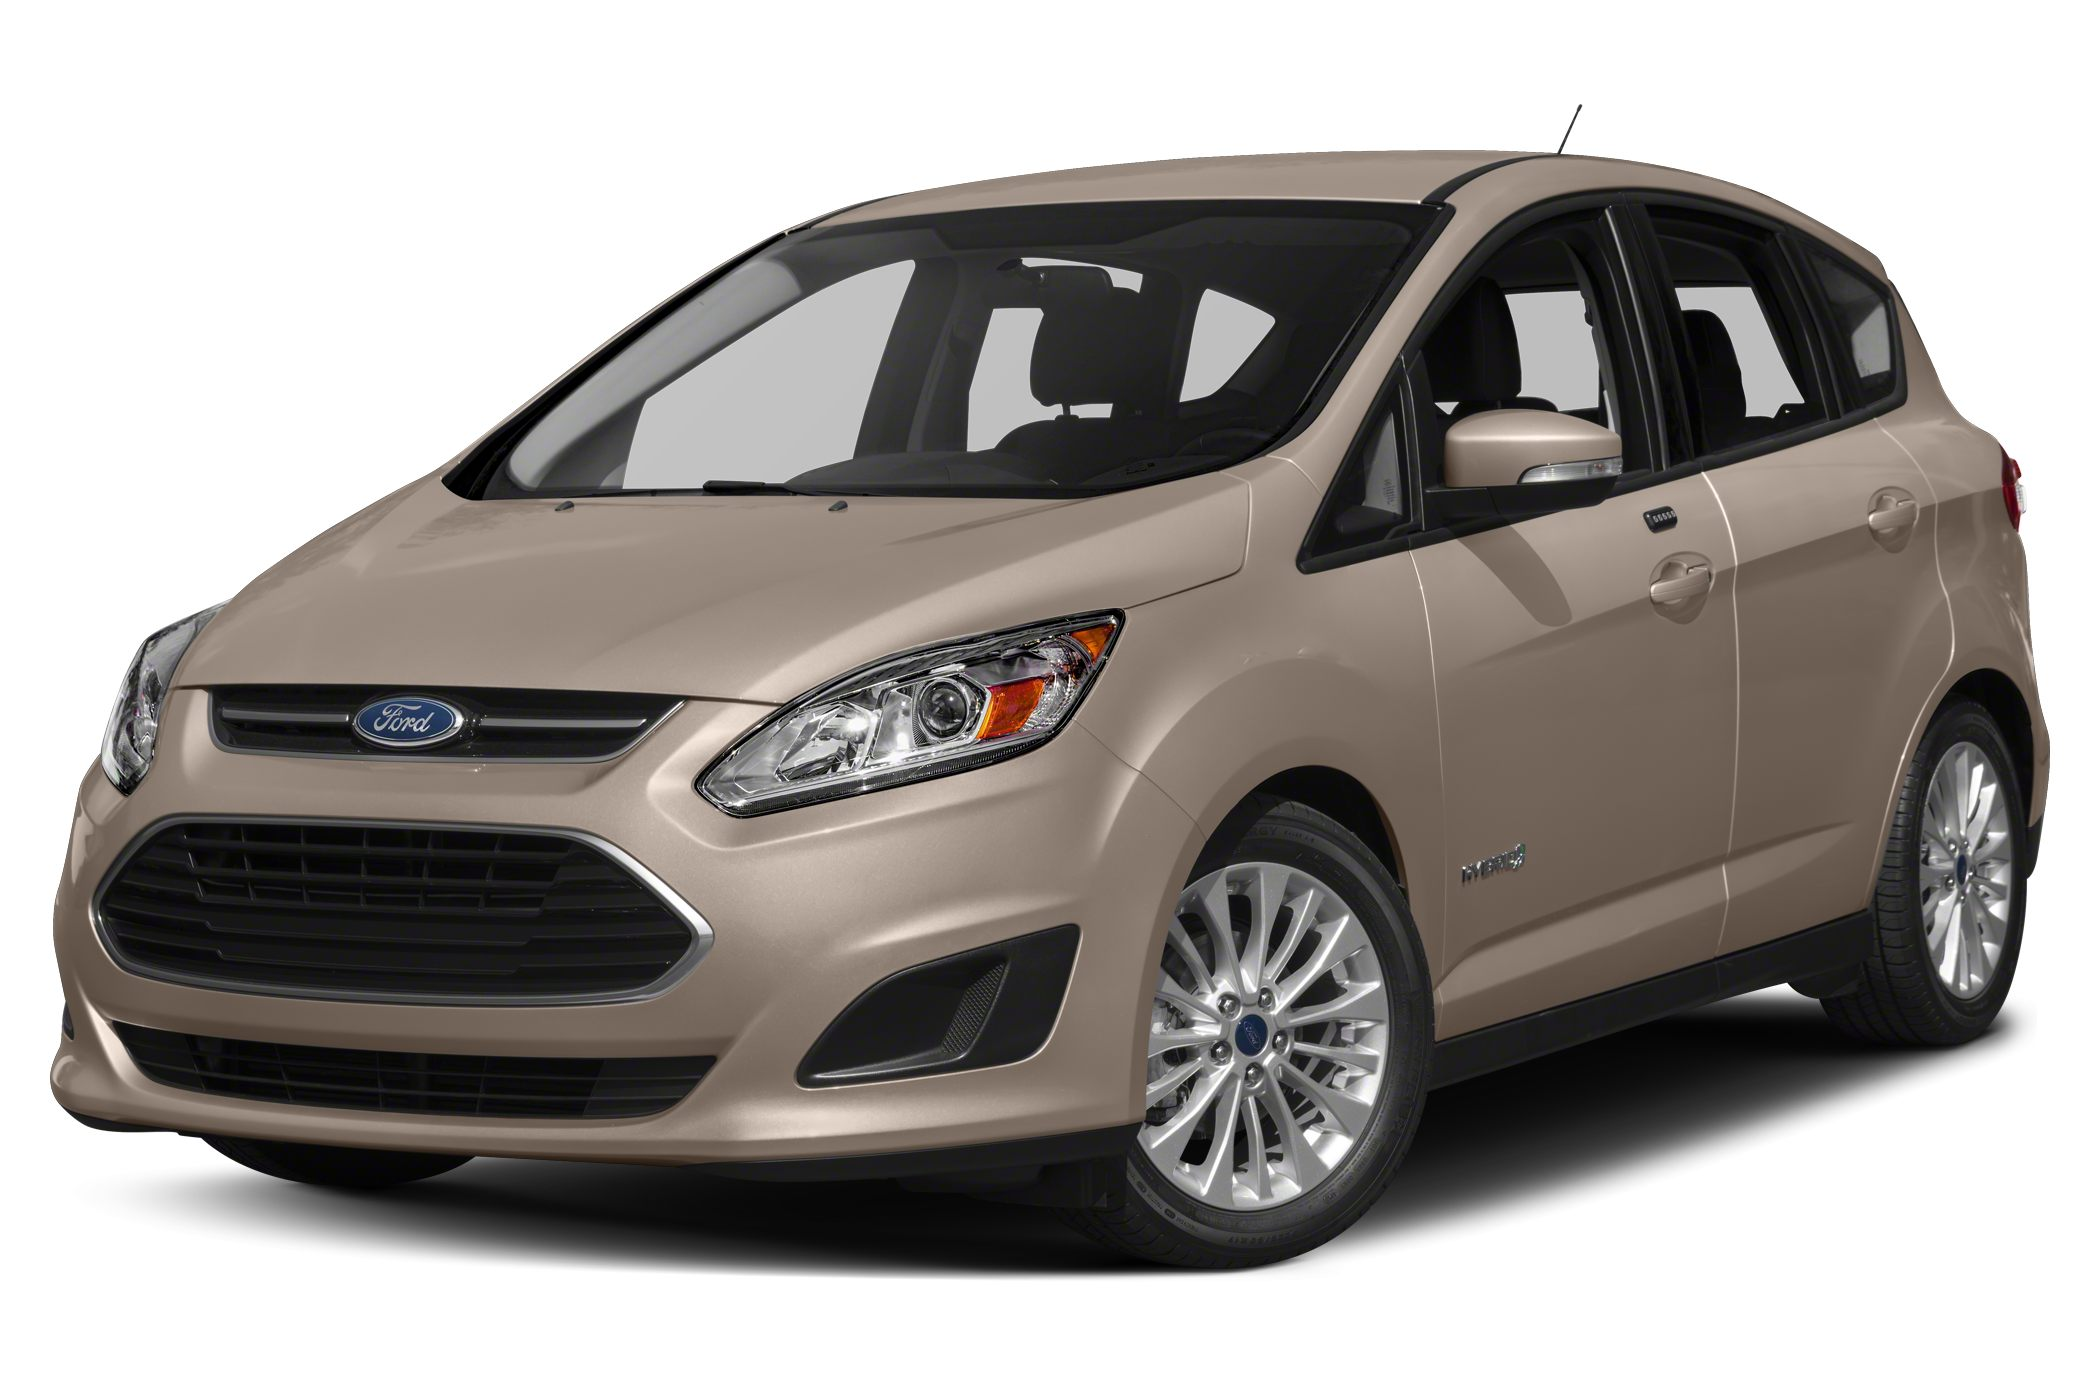 2017 Ford C-Max Hybrid SE HYBRID BACK-UP CAMERA BLUETOOTH MP3 Player KEYLESS ENTRY 38 MPG Hig